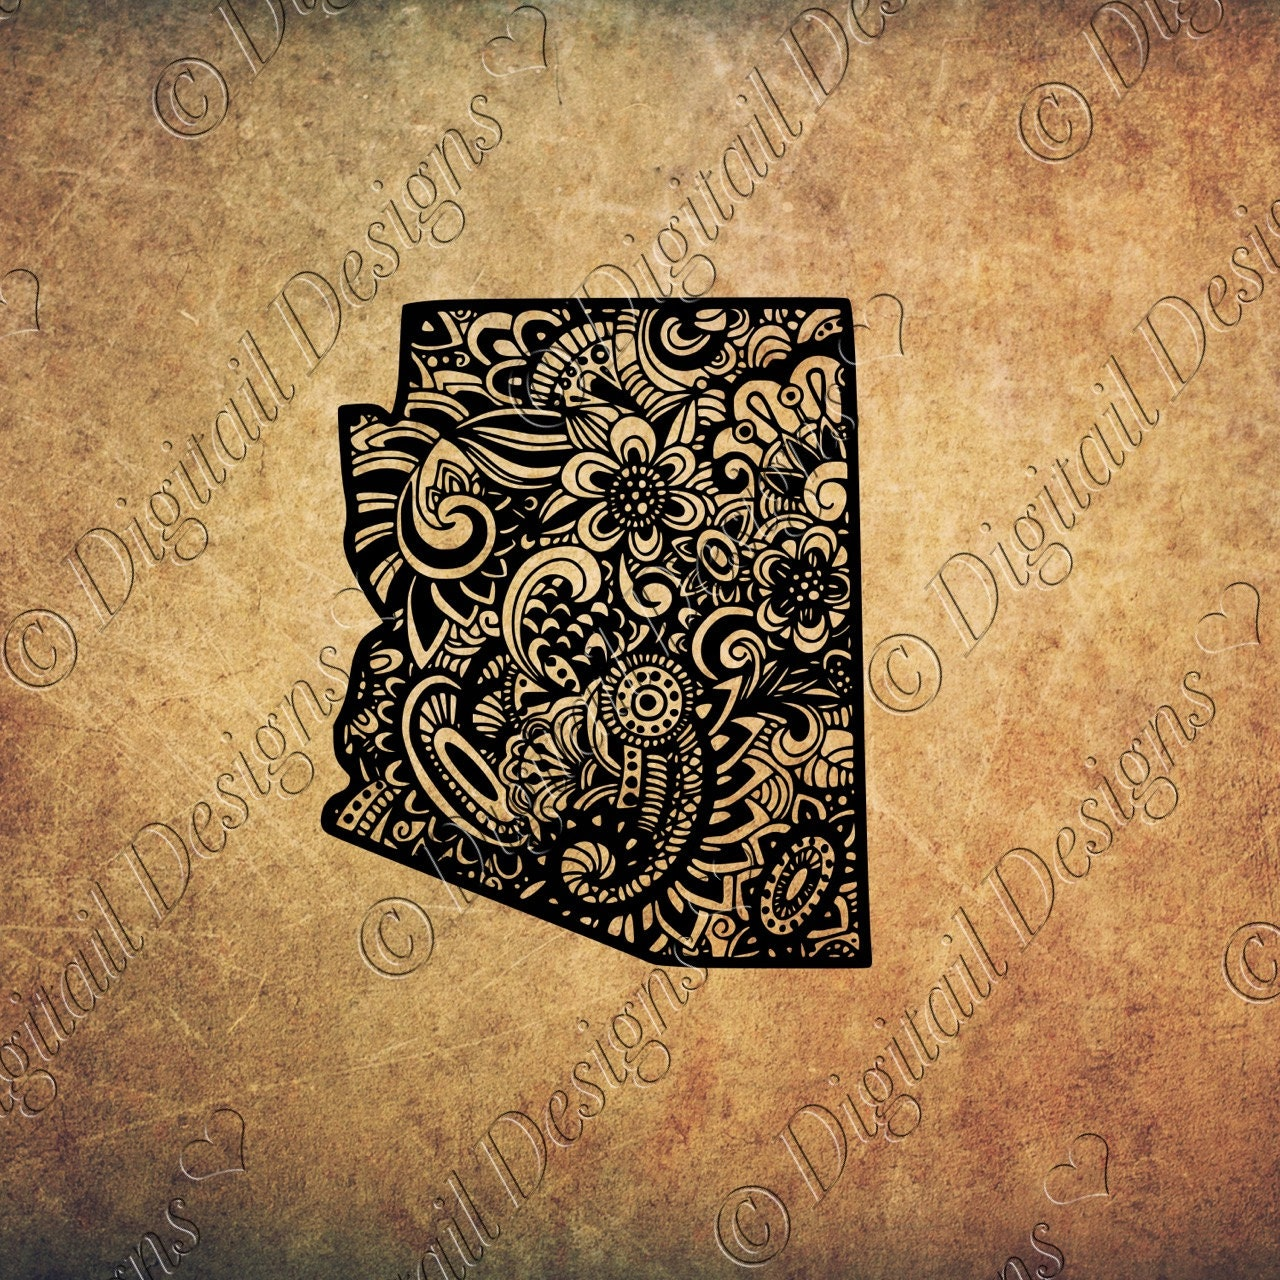 arizona state svg doodle art decal zentangle by digitaildesigns. Black Bedroom Furniture Sets. Home Design Ideas